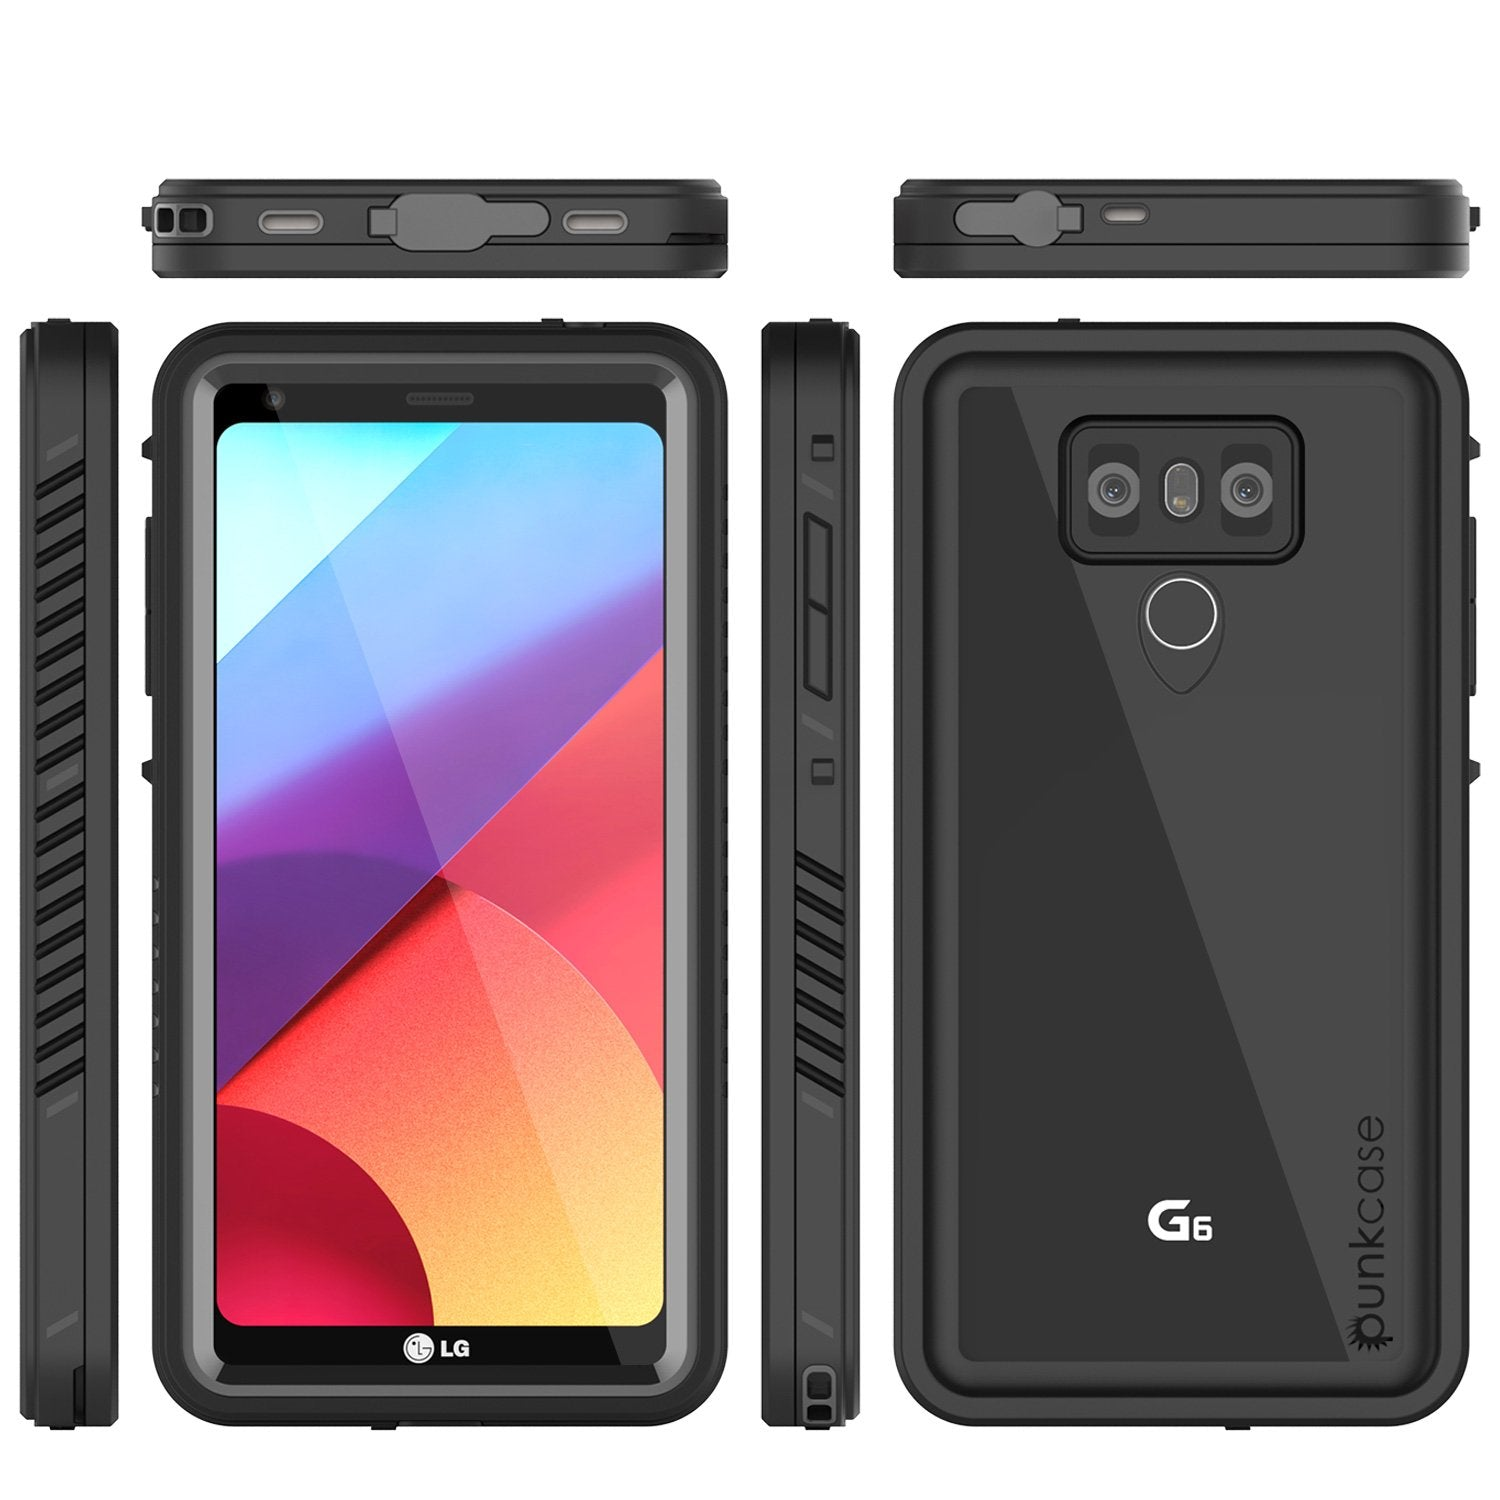 LG G6 Waterproof Case, Punkcase [Extreme Series] [Slim Fit] [IP68 Certified] Built In Screen Protector [BLACK]